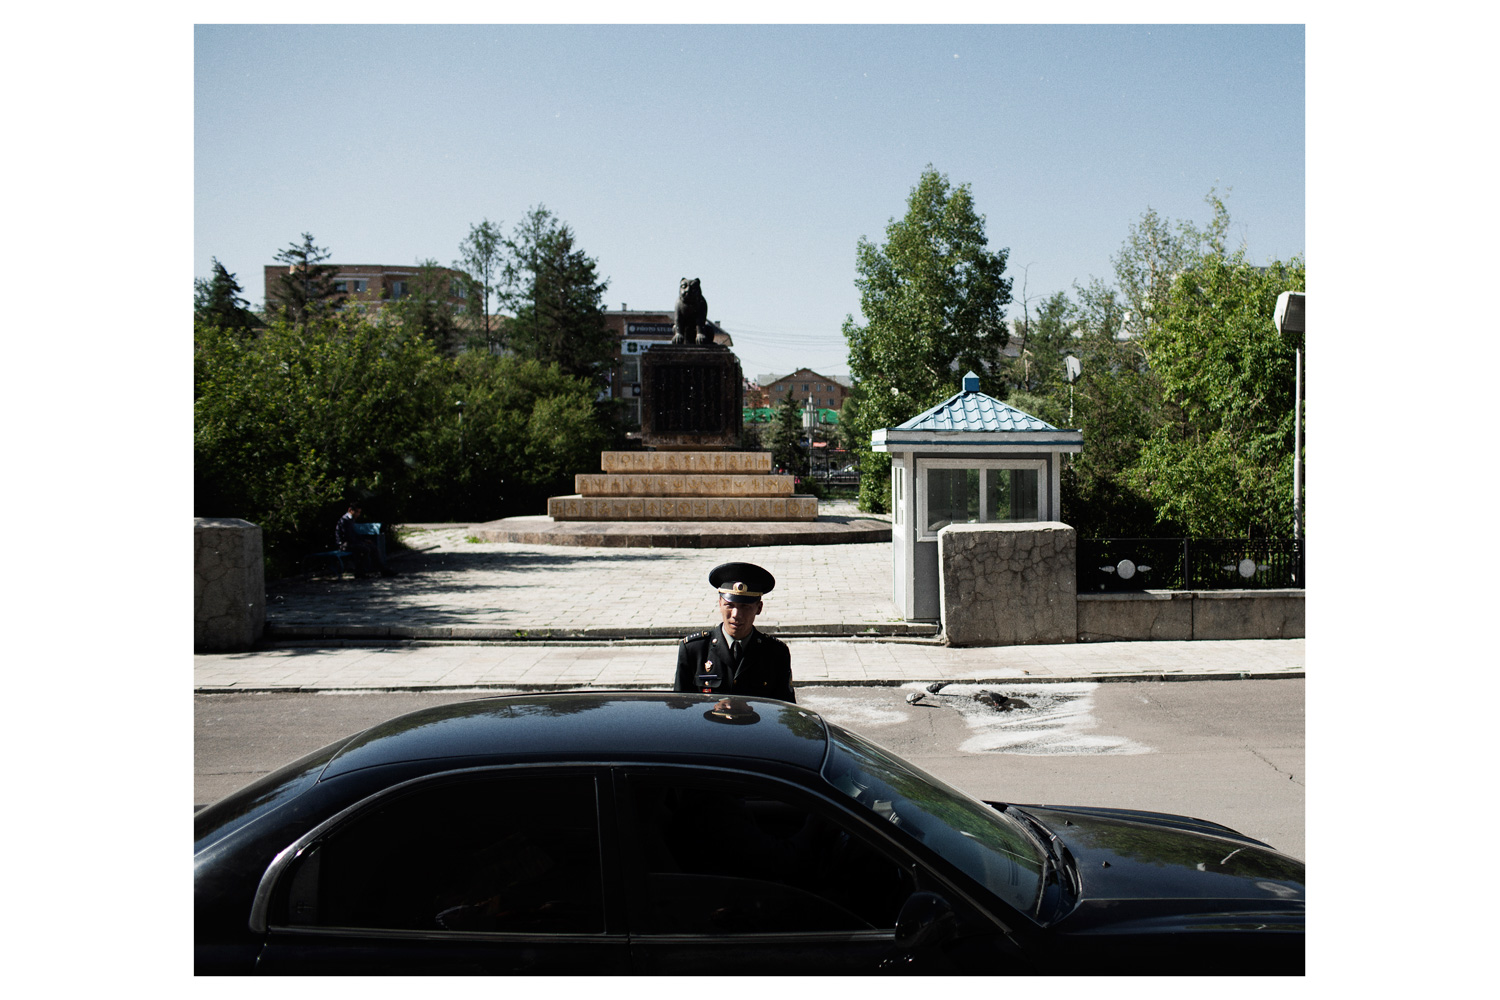 A soldier stands in front of the presidential headquarters in Ulan Bator.